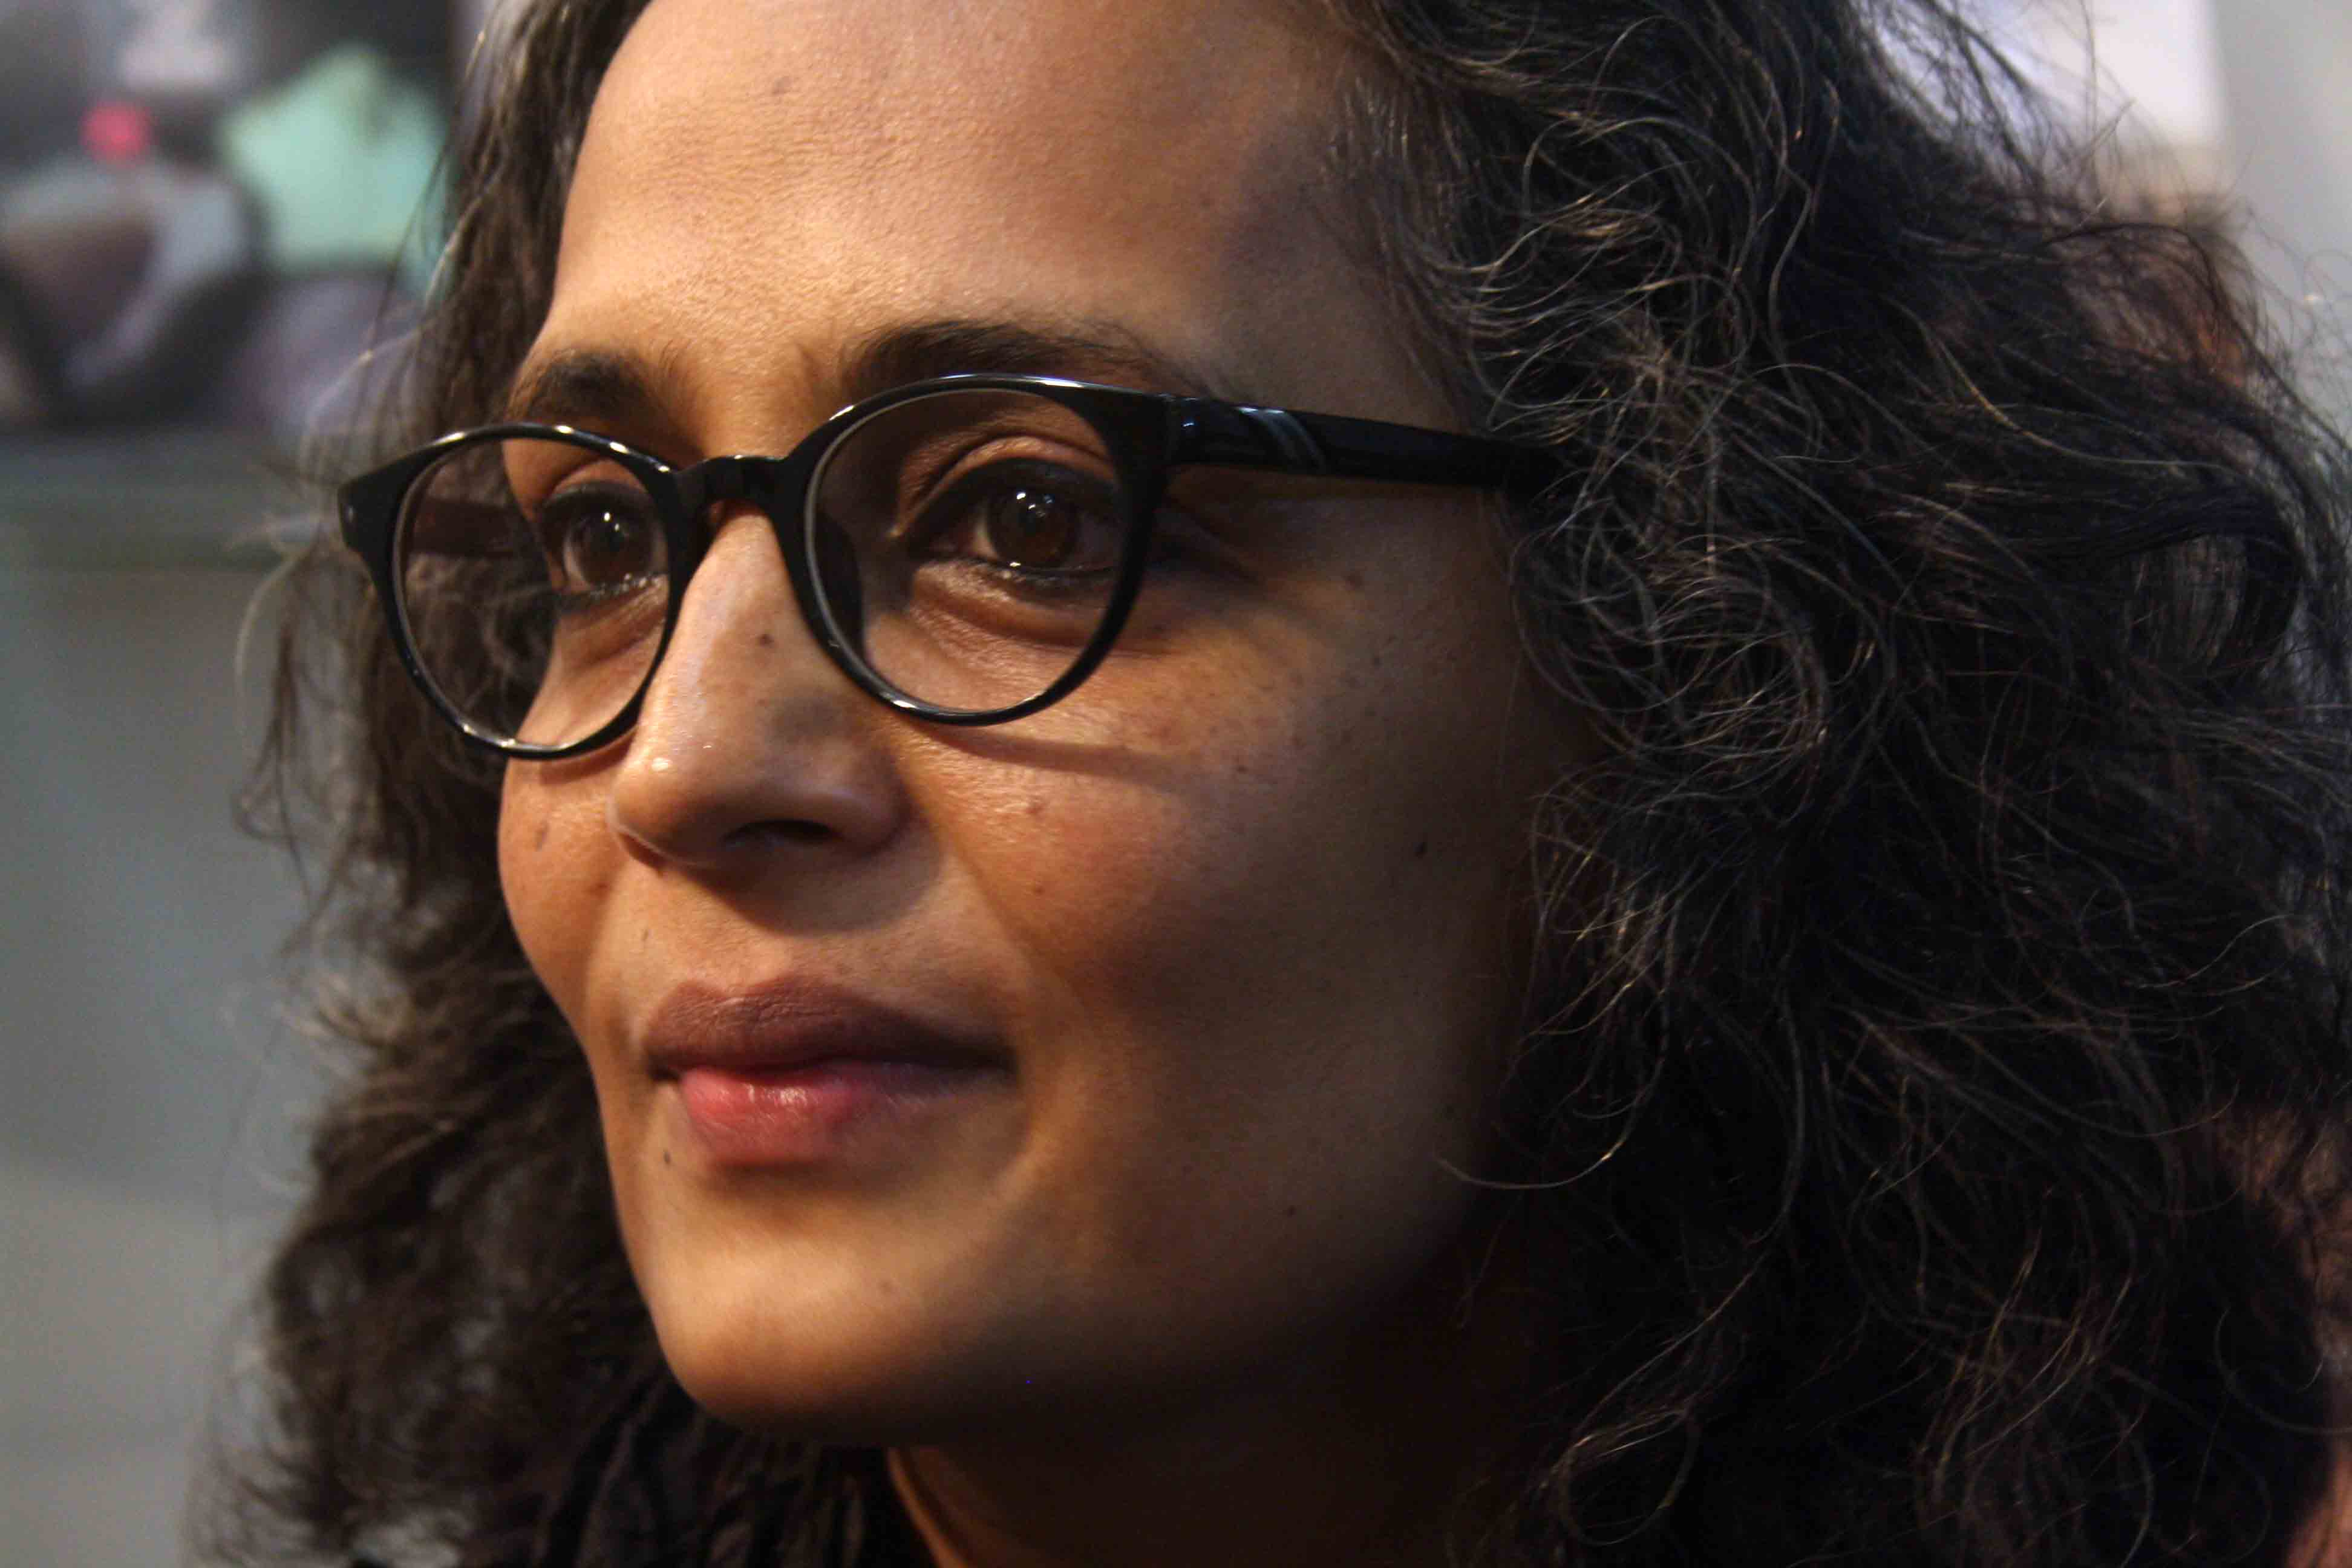 Letter Leaks - Author Ananya Vajpeyi Secretly Tried to Get Dr Ambedkar's 'Annihilation of Caste' introduced by Arundhati Roy Banned